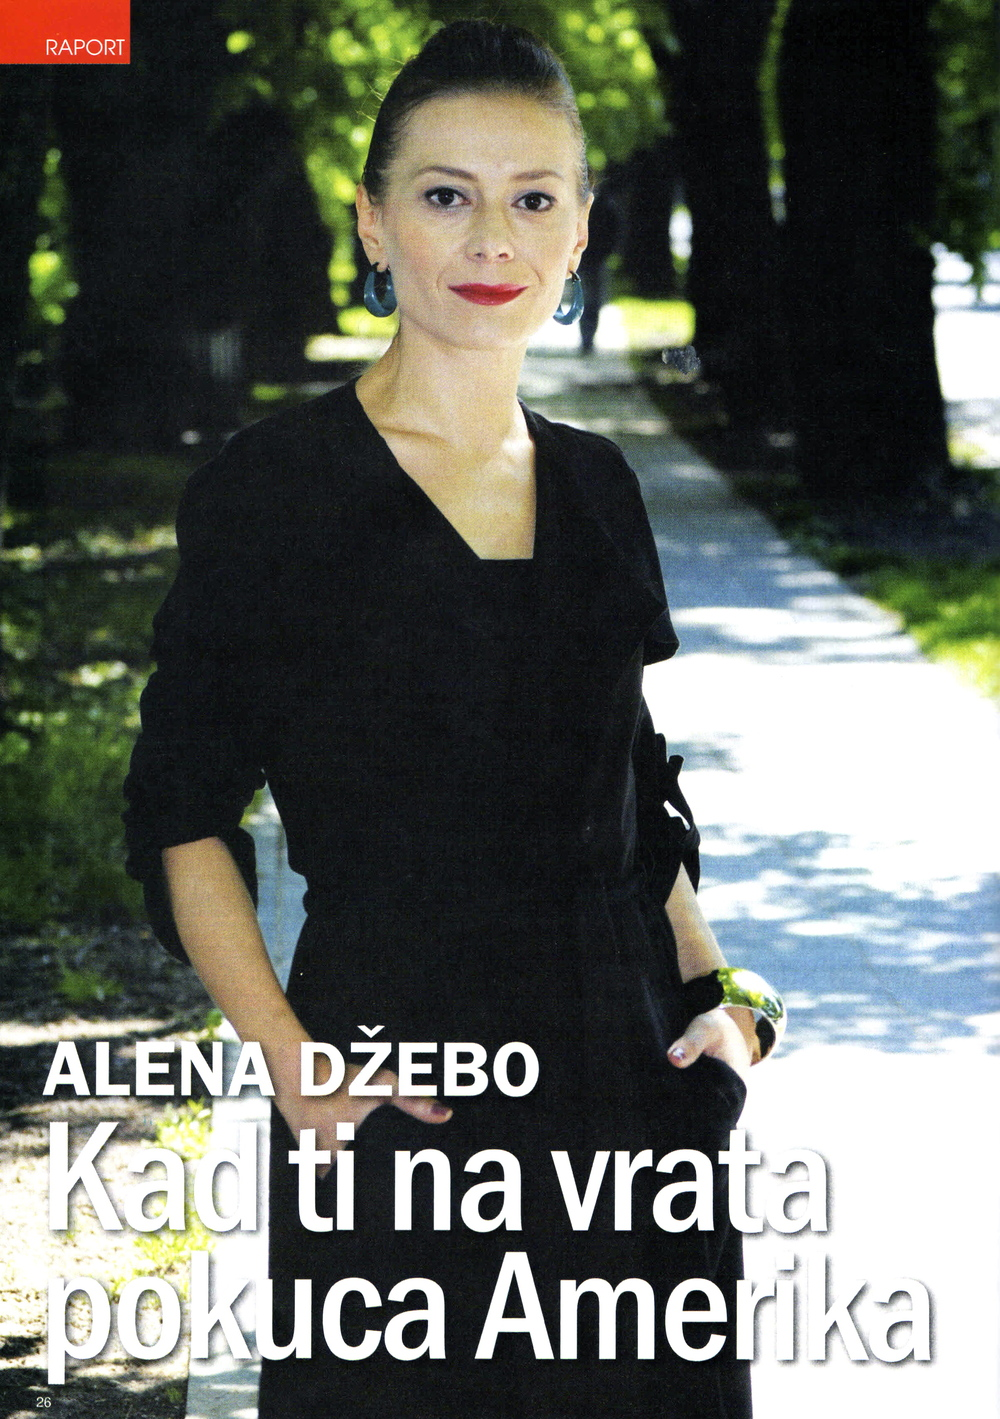 """When America Knocks on Your Door""  By Živana Jovančić,  May 23, 2014.  Published by Gracija."